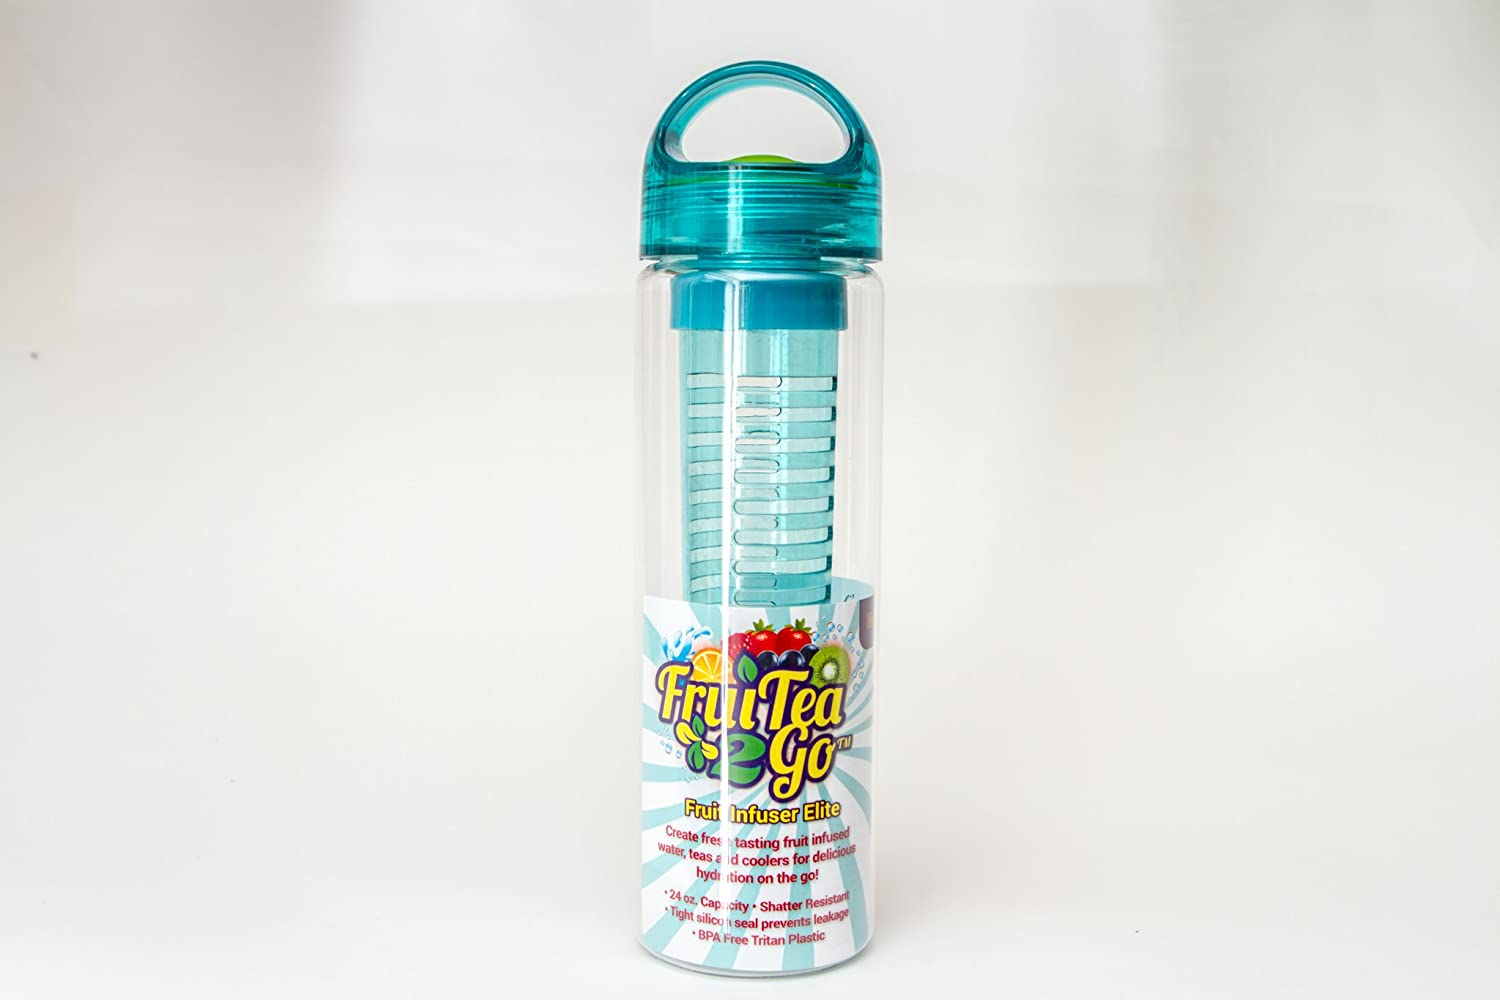 Teal Fruit Infuser Water Bottle  Fruitea2go Elite  24oz  Make Your Own Fruit Infused Flavored Water by FruiTea2Go